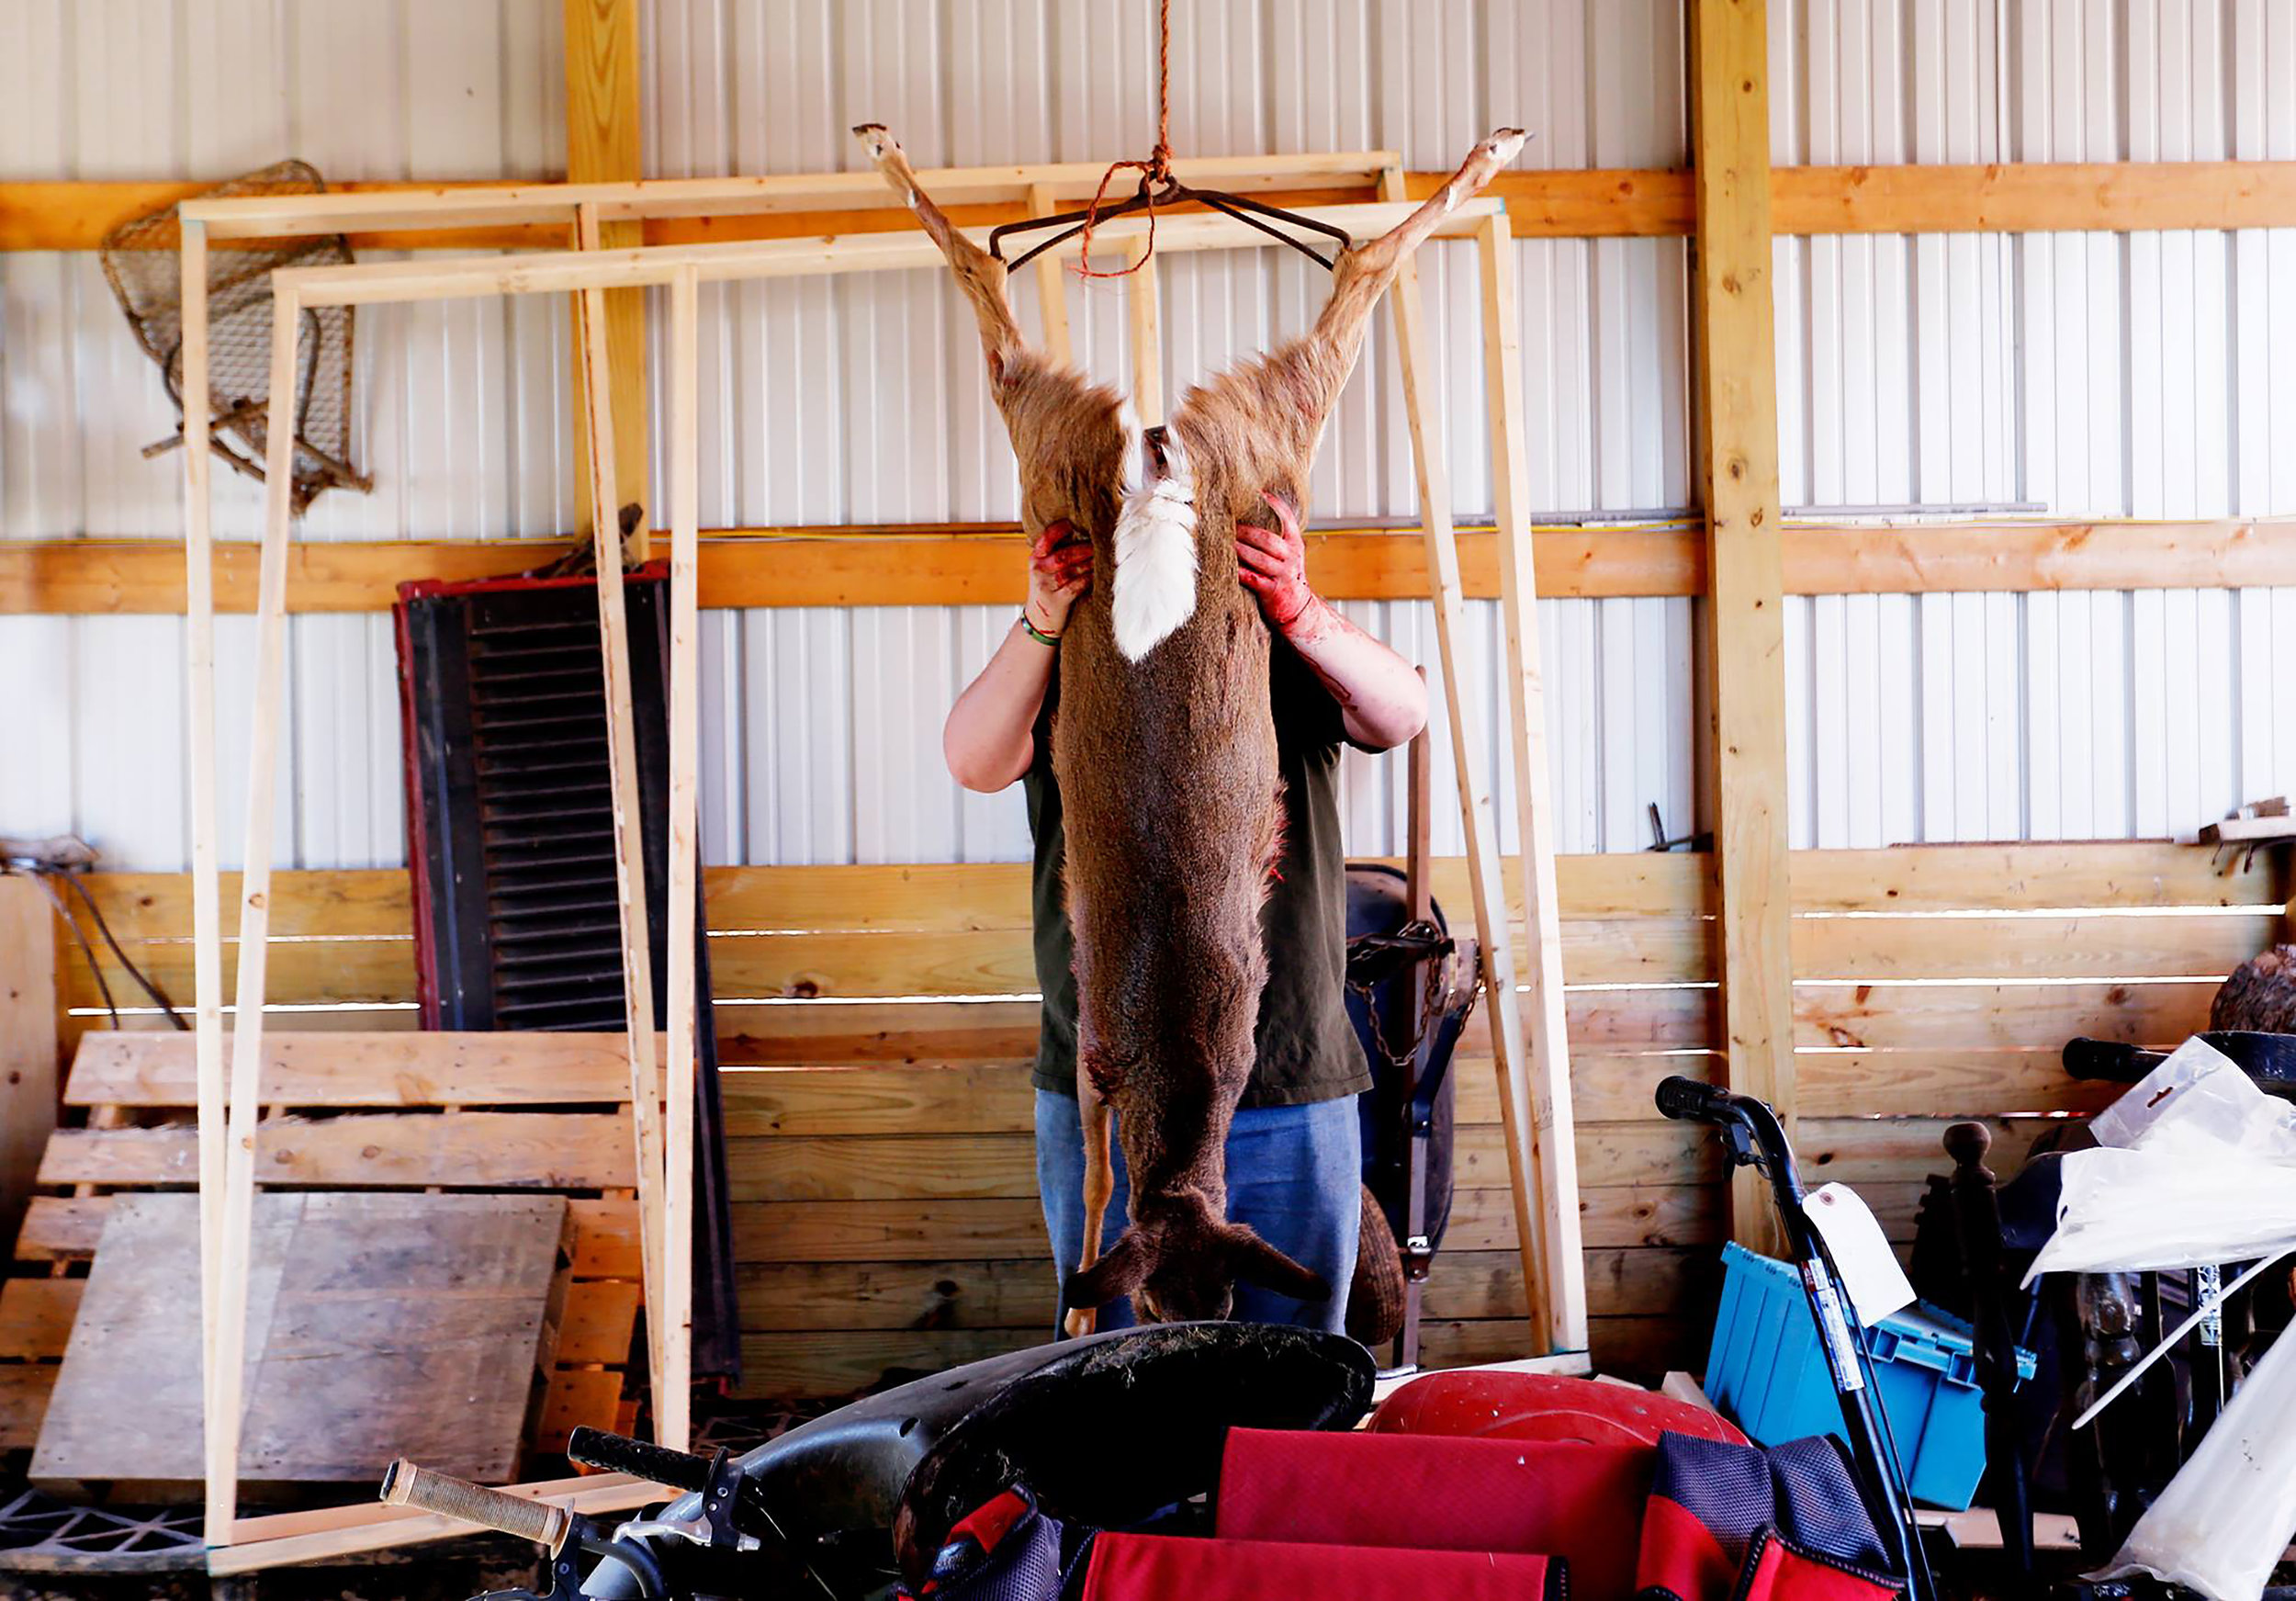 Tanner Koons guts a freshly hunted deer in his barn. Glouster, Ohio, 2016.